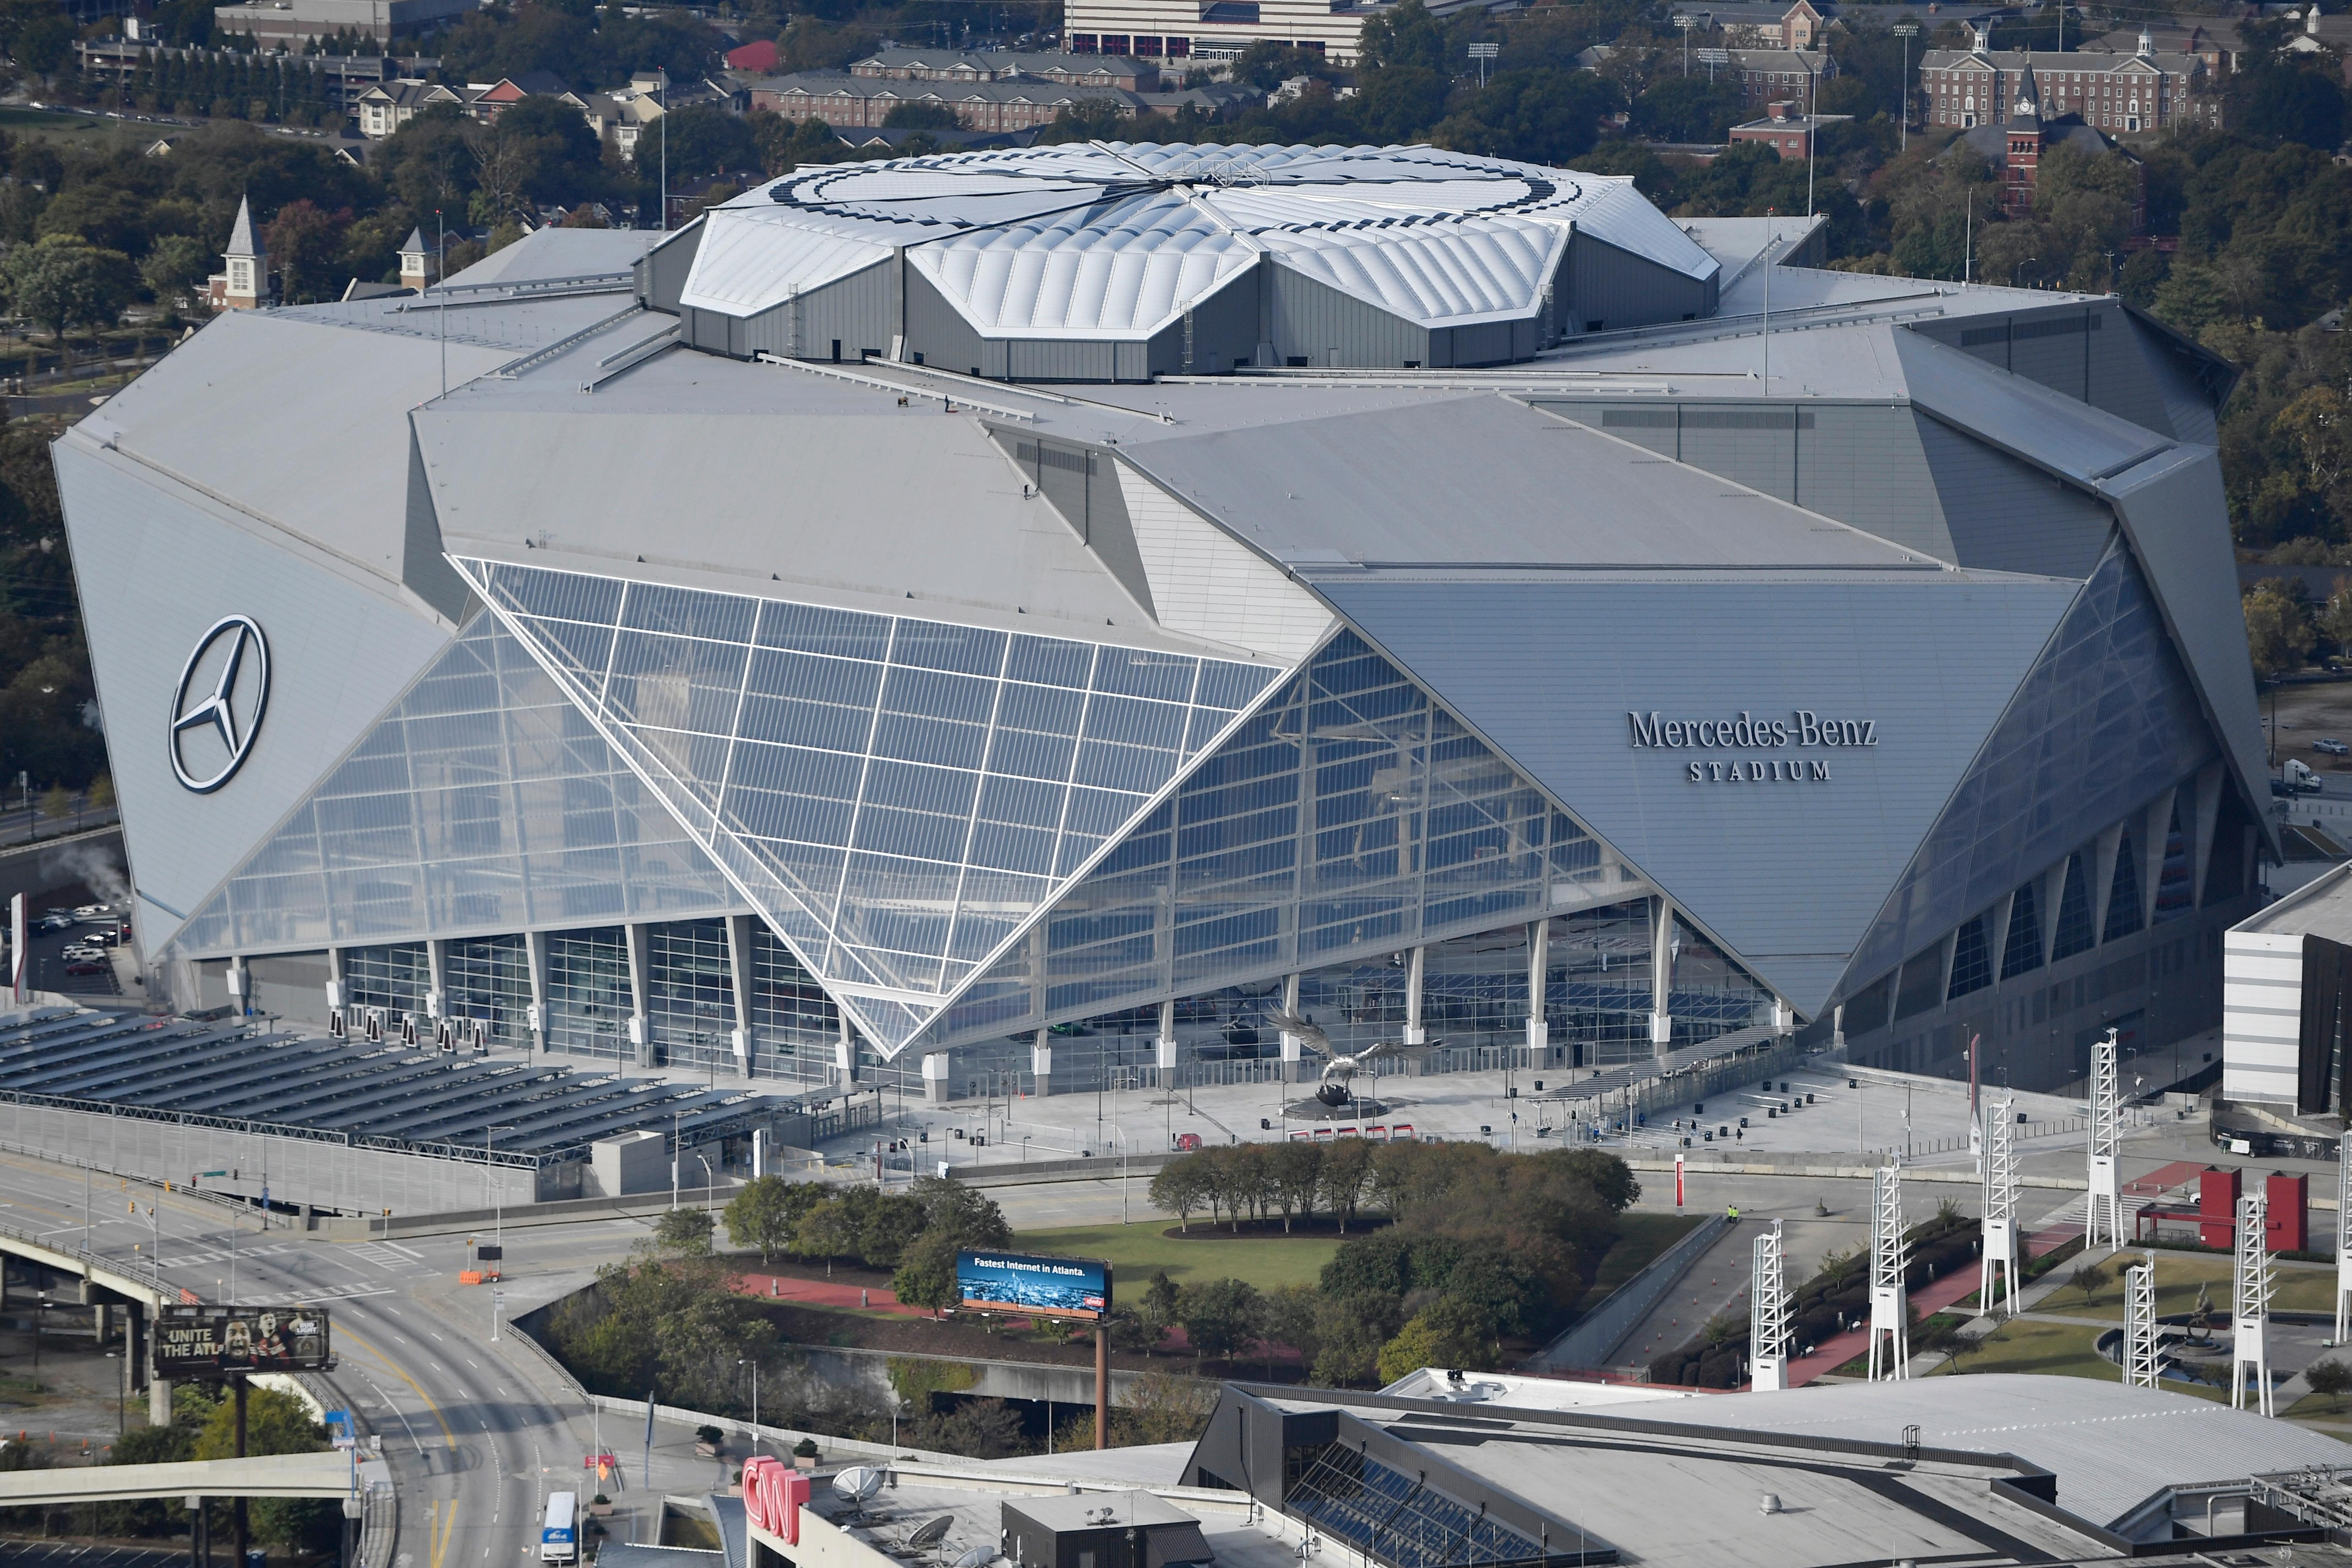 This Wednesday, Nov. 1, 2017 photo shows the Mercedes-Benz stadium in Atlanta. The stadium opened Aug. 26, 2017, with a Falcons' pre-season game against the Arizona Cardinals.  (AP Photo/Mike Stewart)